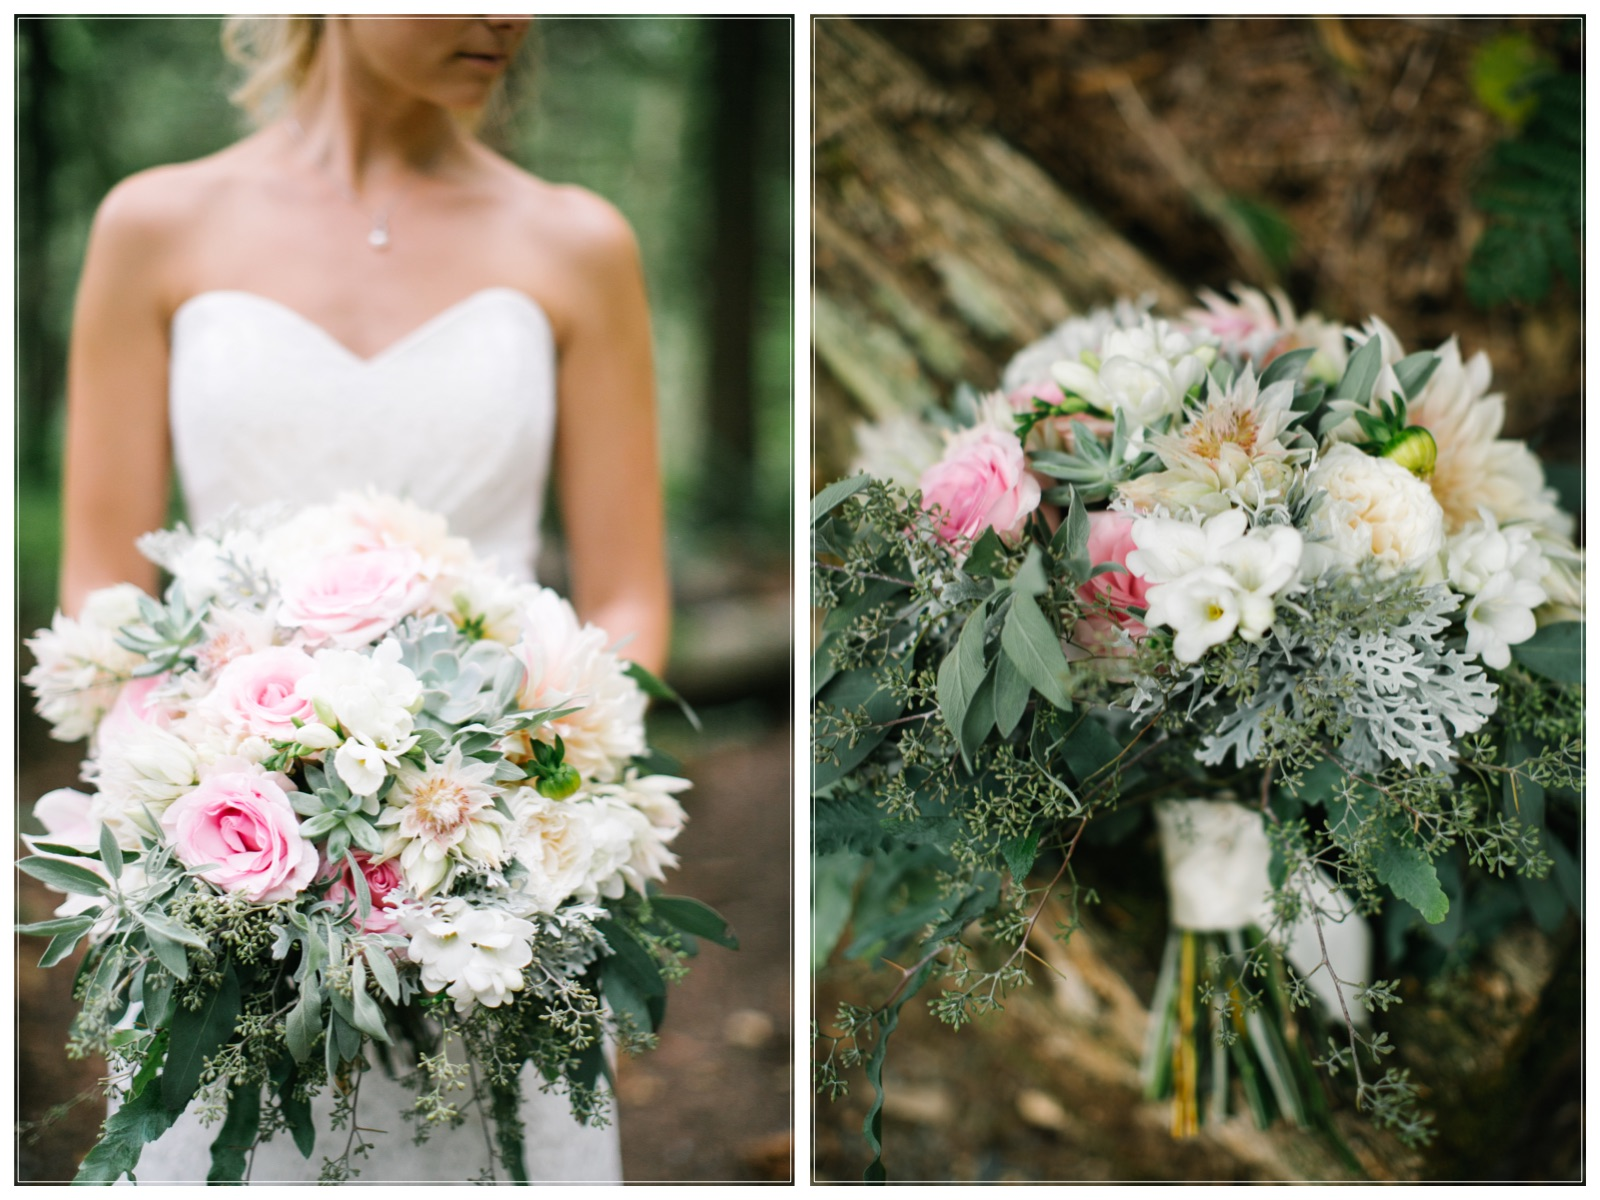 Beautiful summer Garden style Bouquet by Abbotsford wedding florist, Floral design by Lili